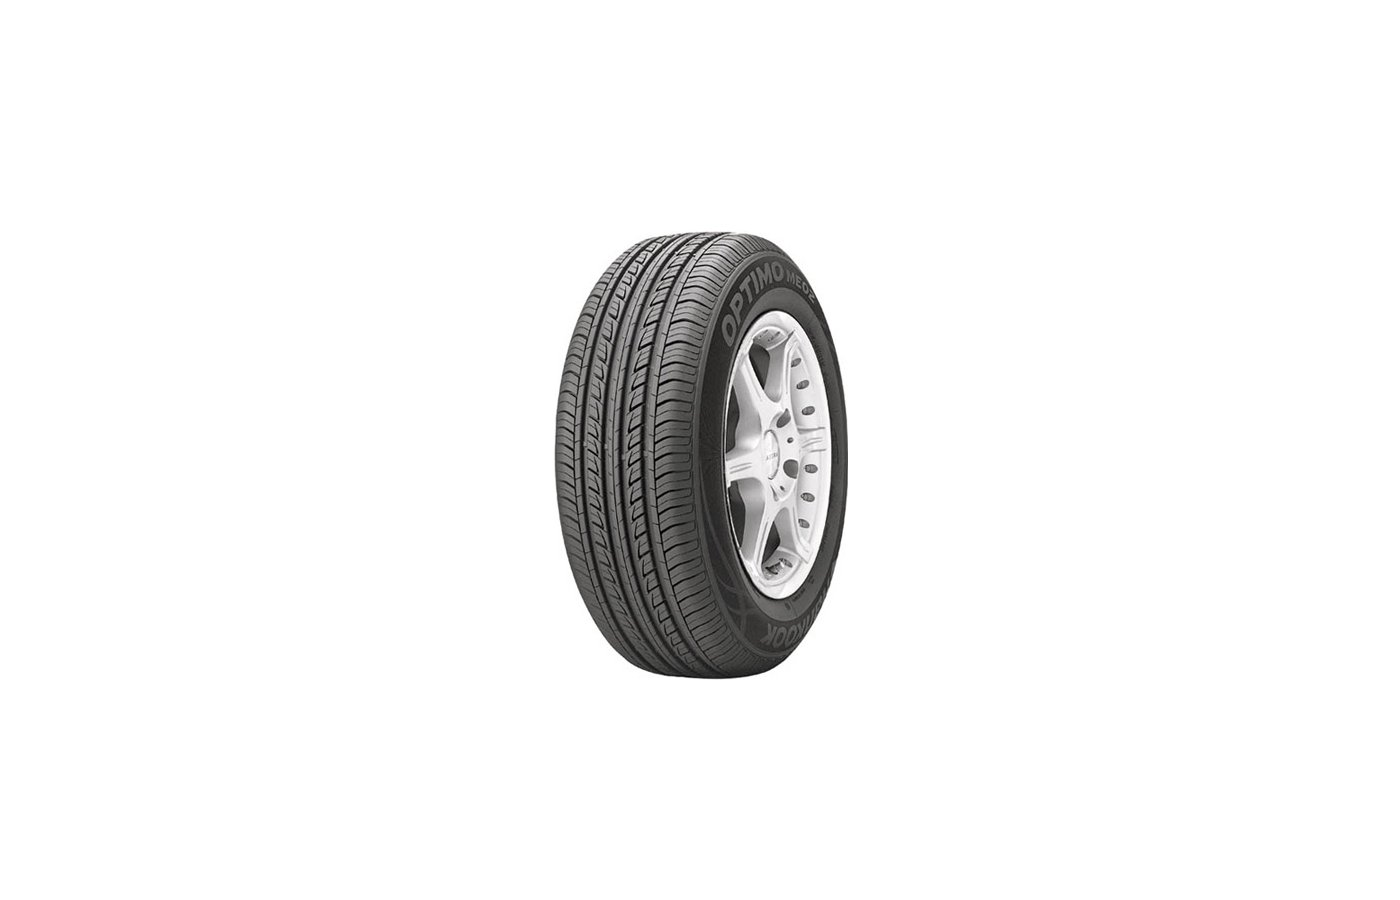 Шина Hankook K424 (Optimo ME02) 185/55 R15 TL 86H